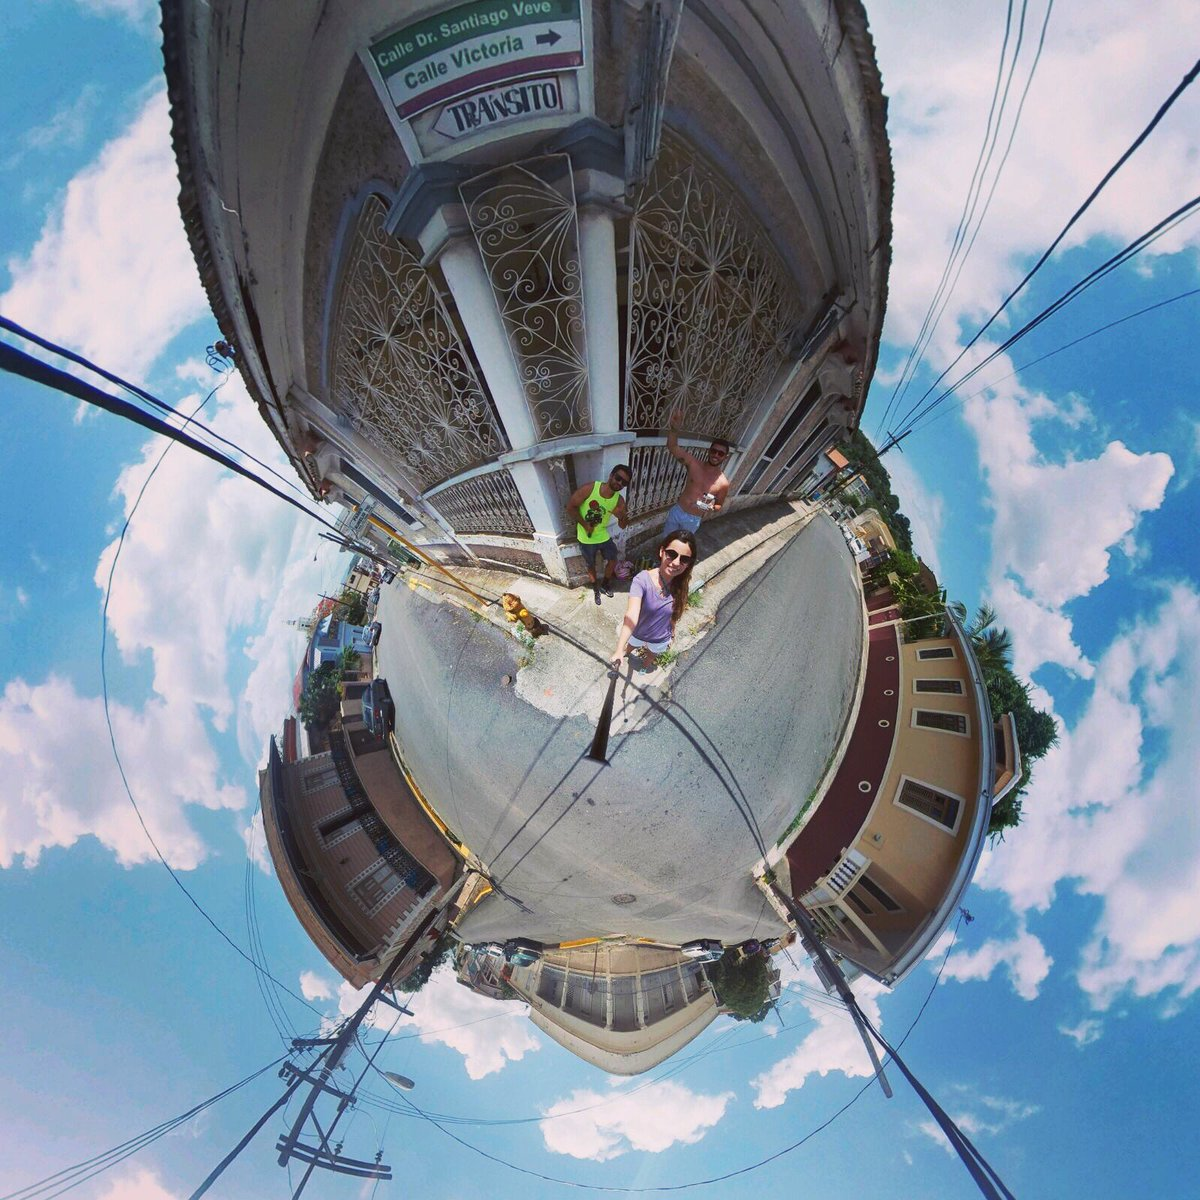 Follow all the roads along the way, you will always learn something in the end. #puertorico #travel #javicel #tinyplanetcouple #tinyplanet<br>http://pic.twitter.com/KZU1DJH0U7